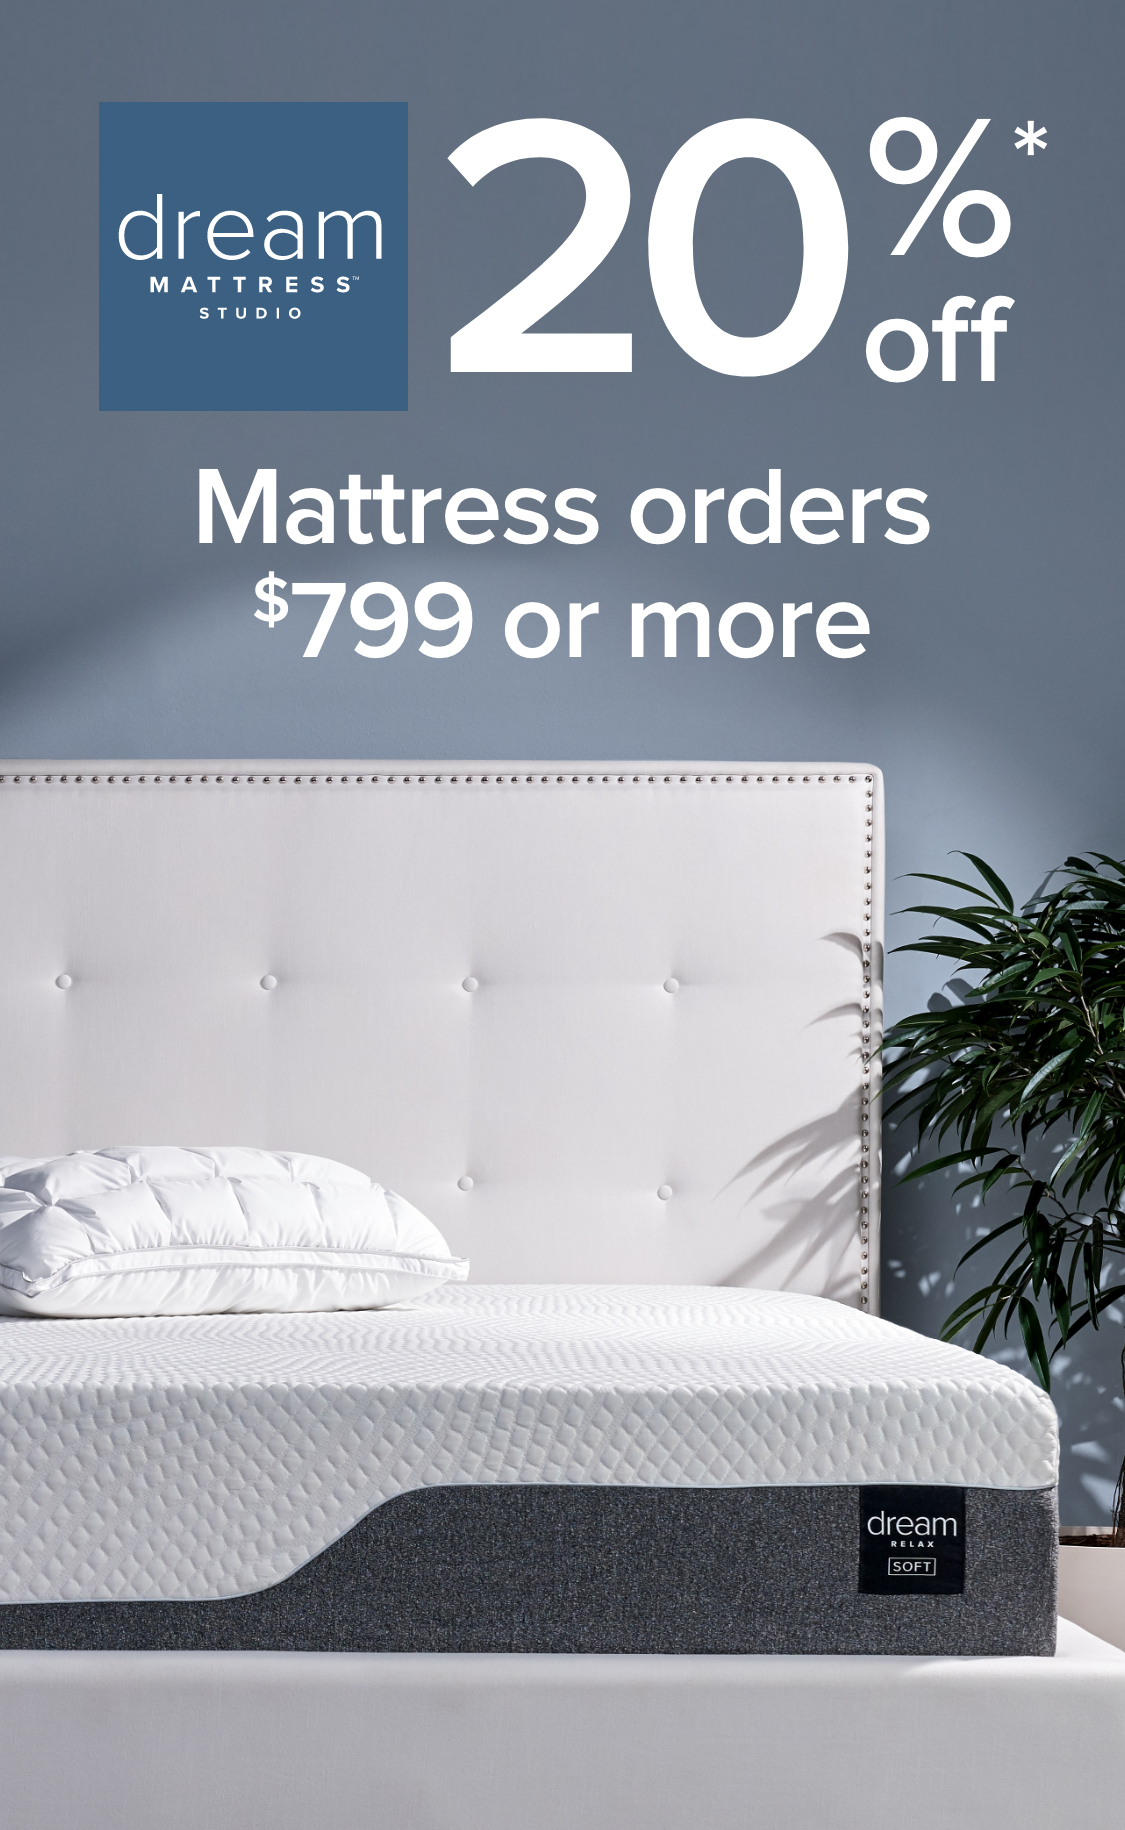 Dream Mattress Studio + Our Personalized Approach to Mattress Shopping